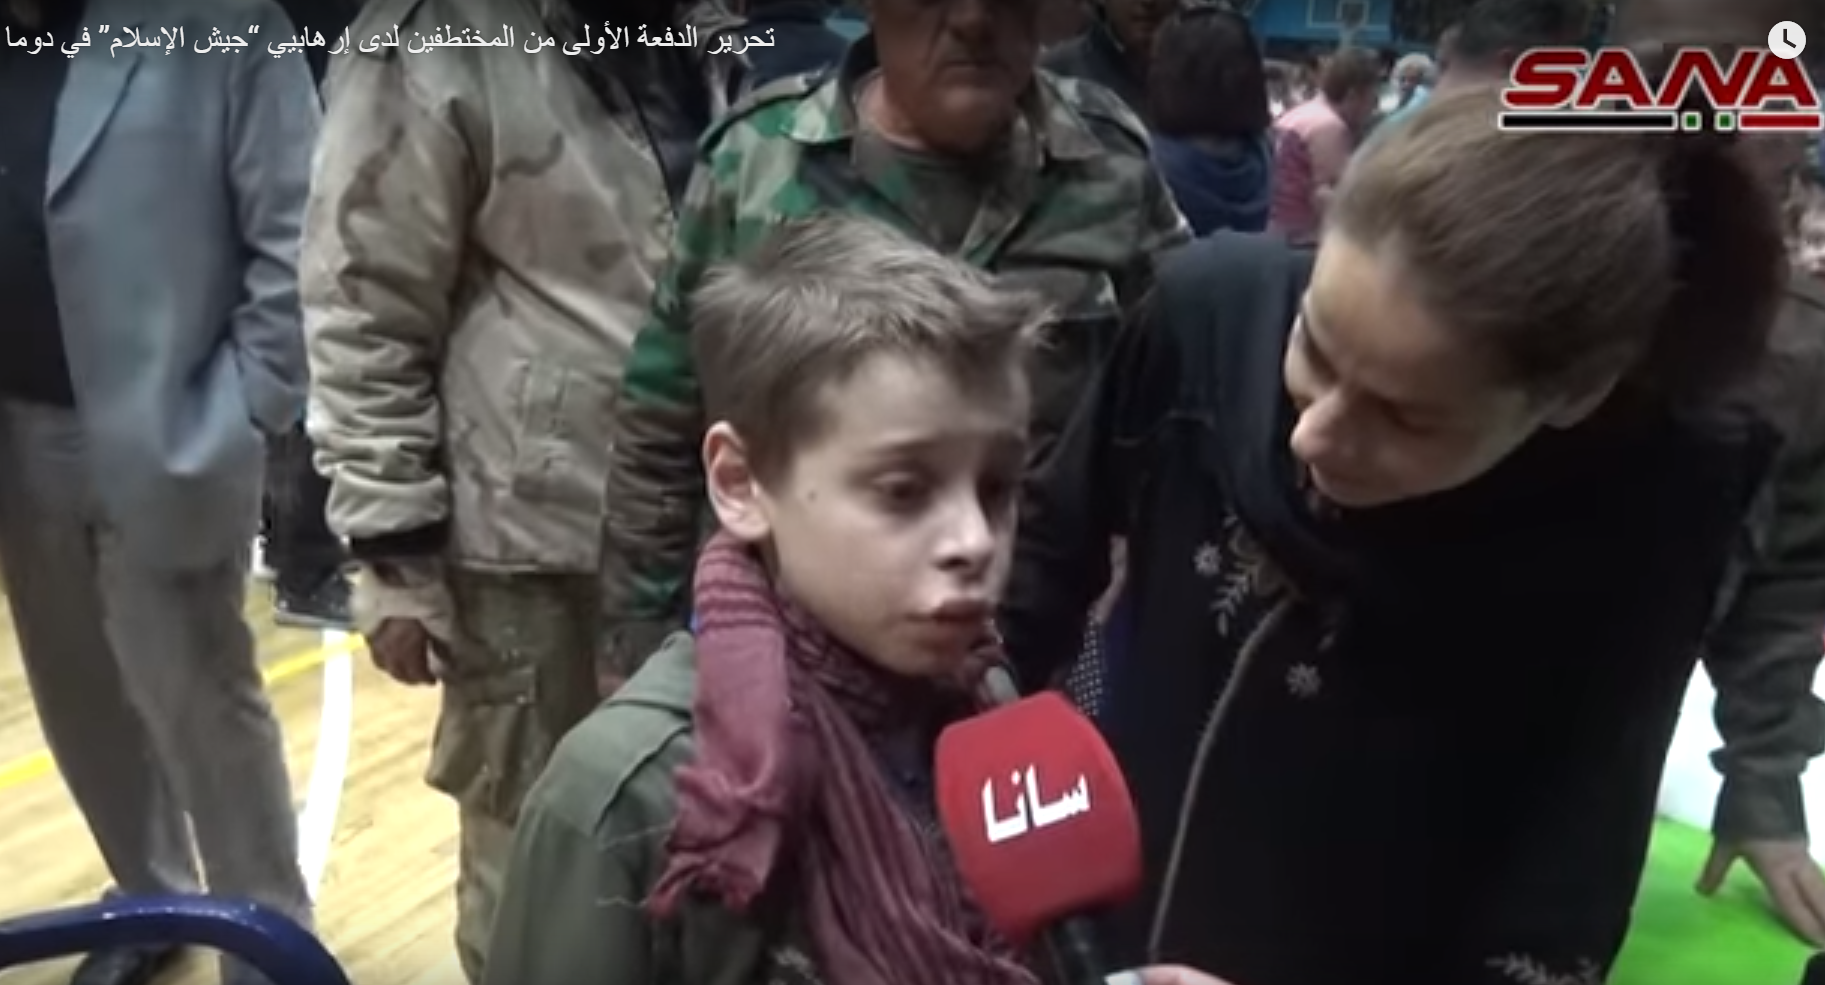 A former hostage child speaking of being detained by Jaysh al-Islam with his mother (SANA)